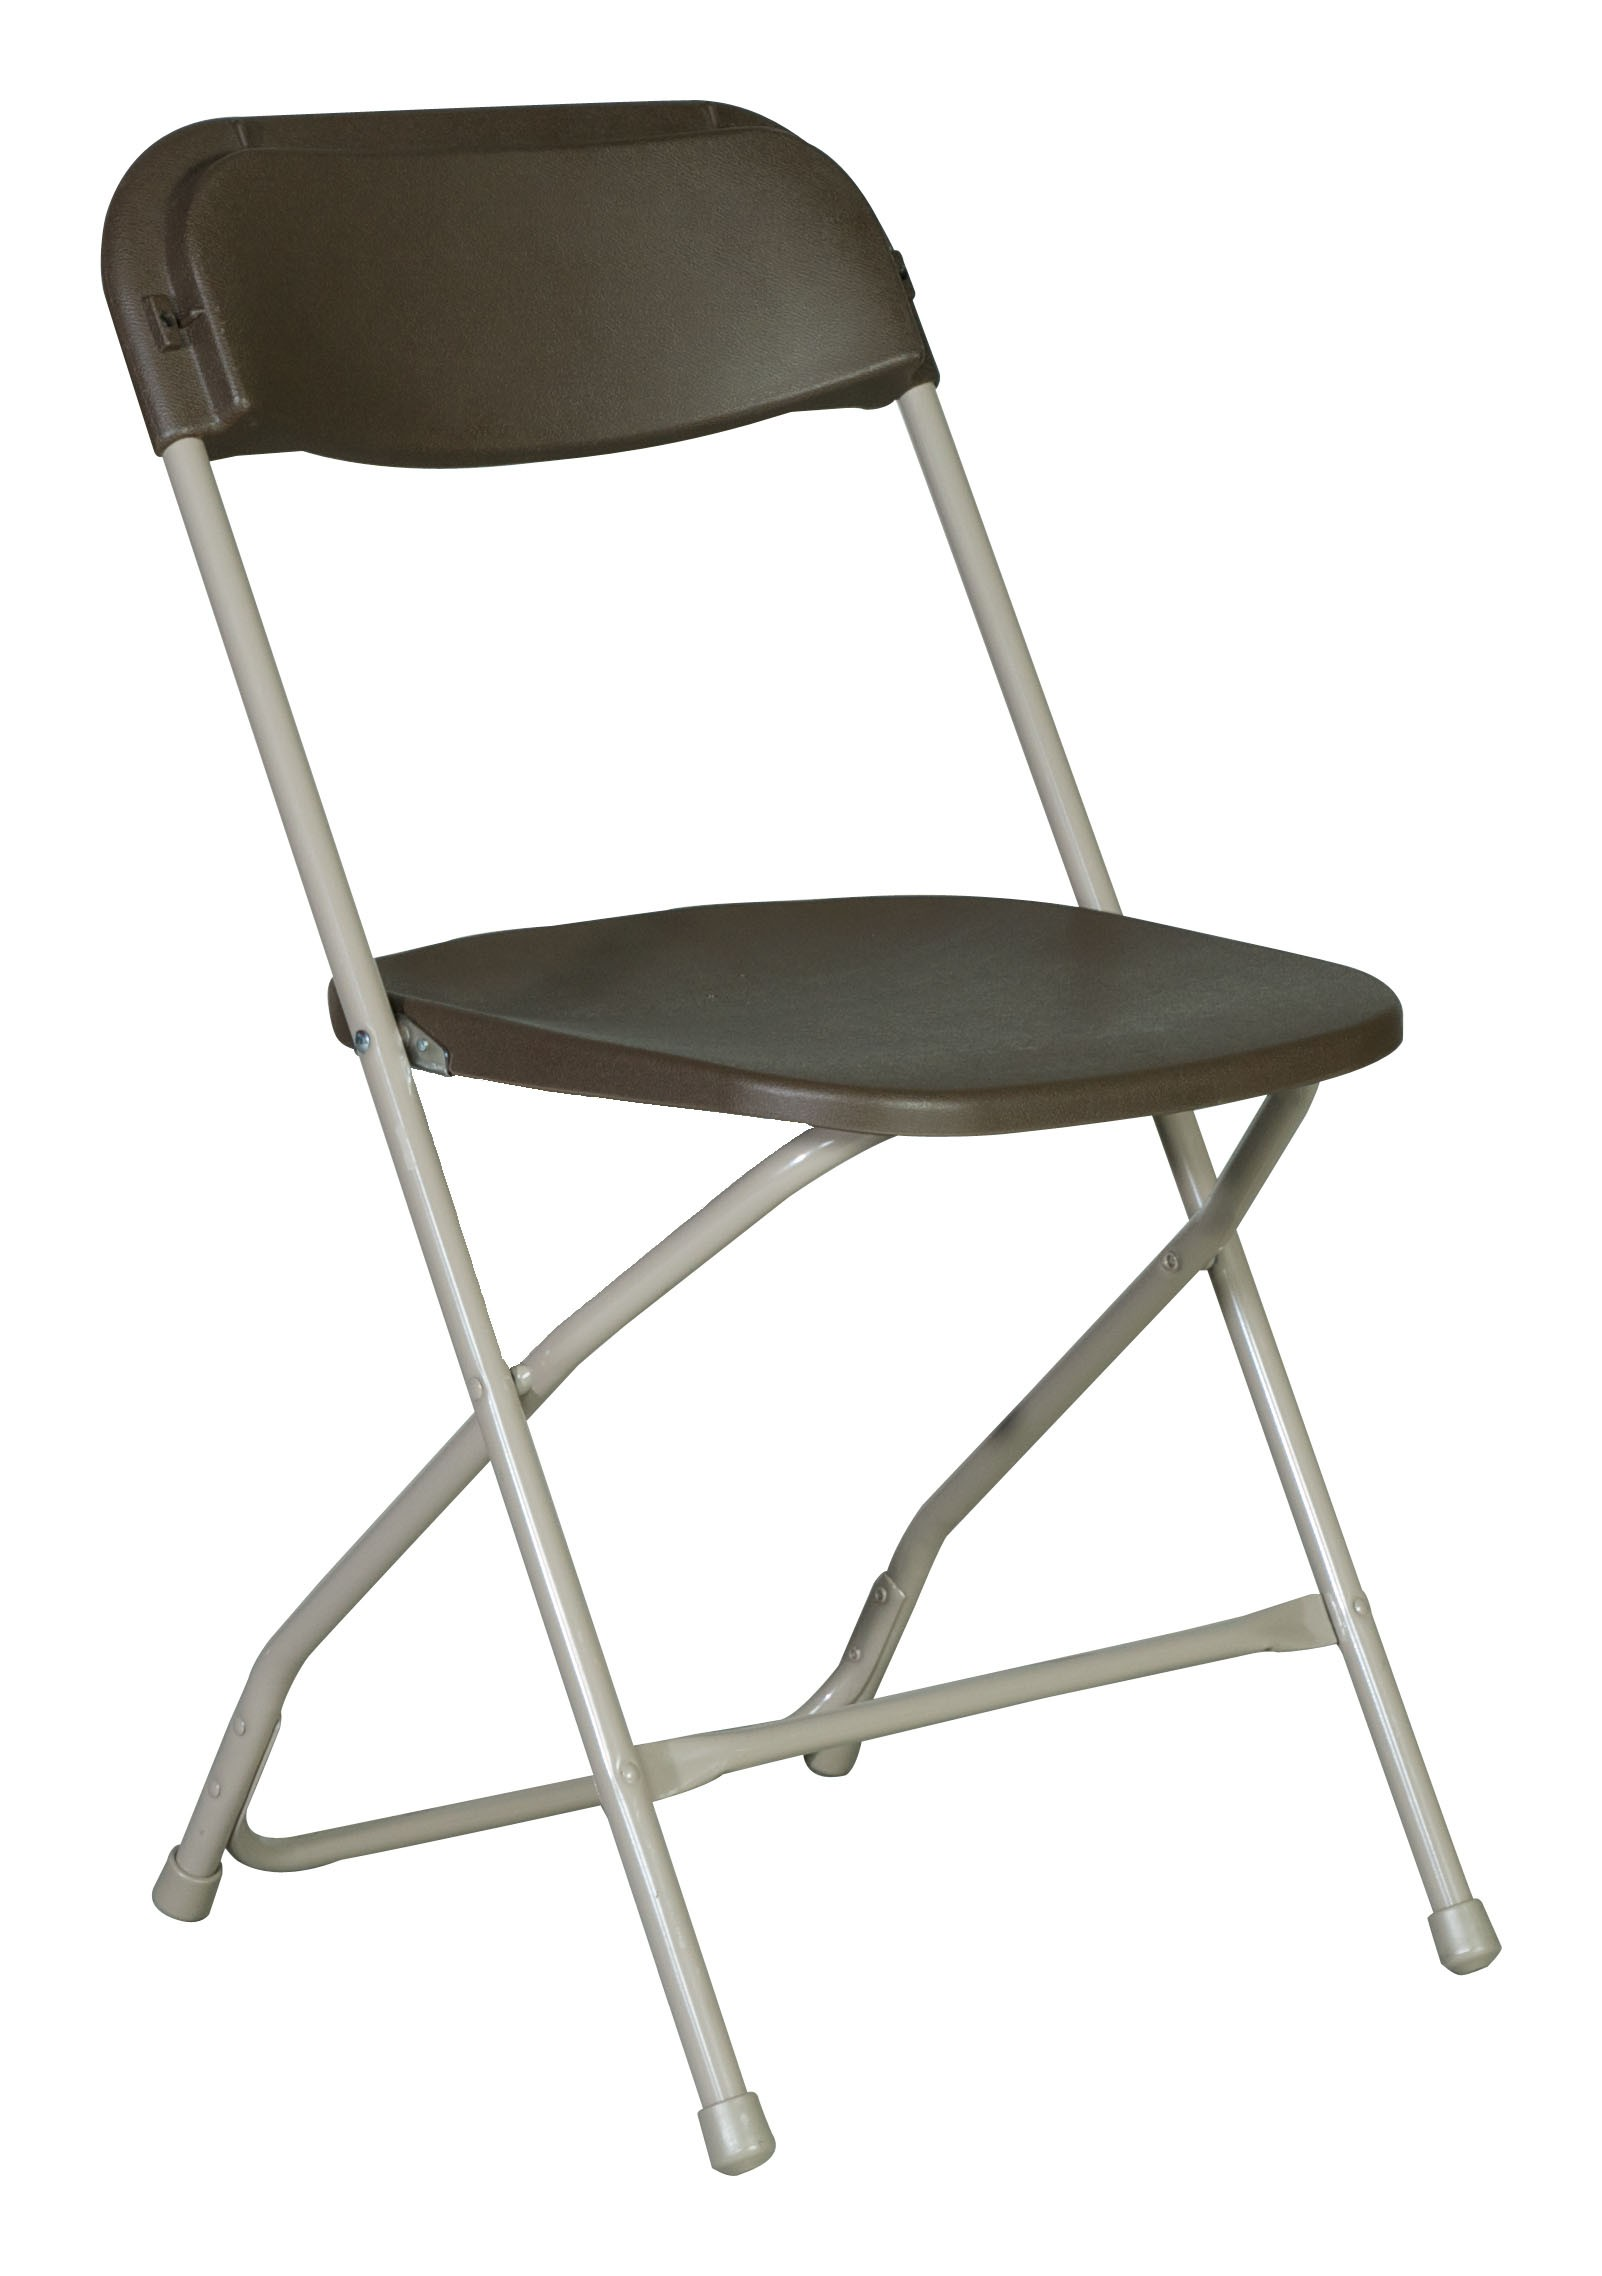 PLASTIC FOLDING CHAIRS Reid Rental Newberg